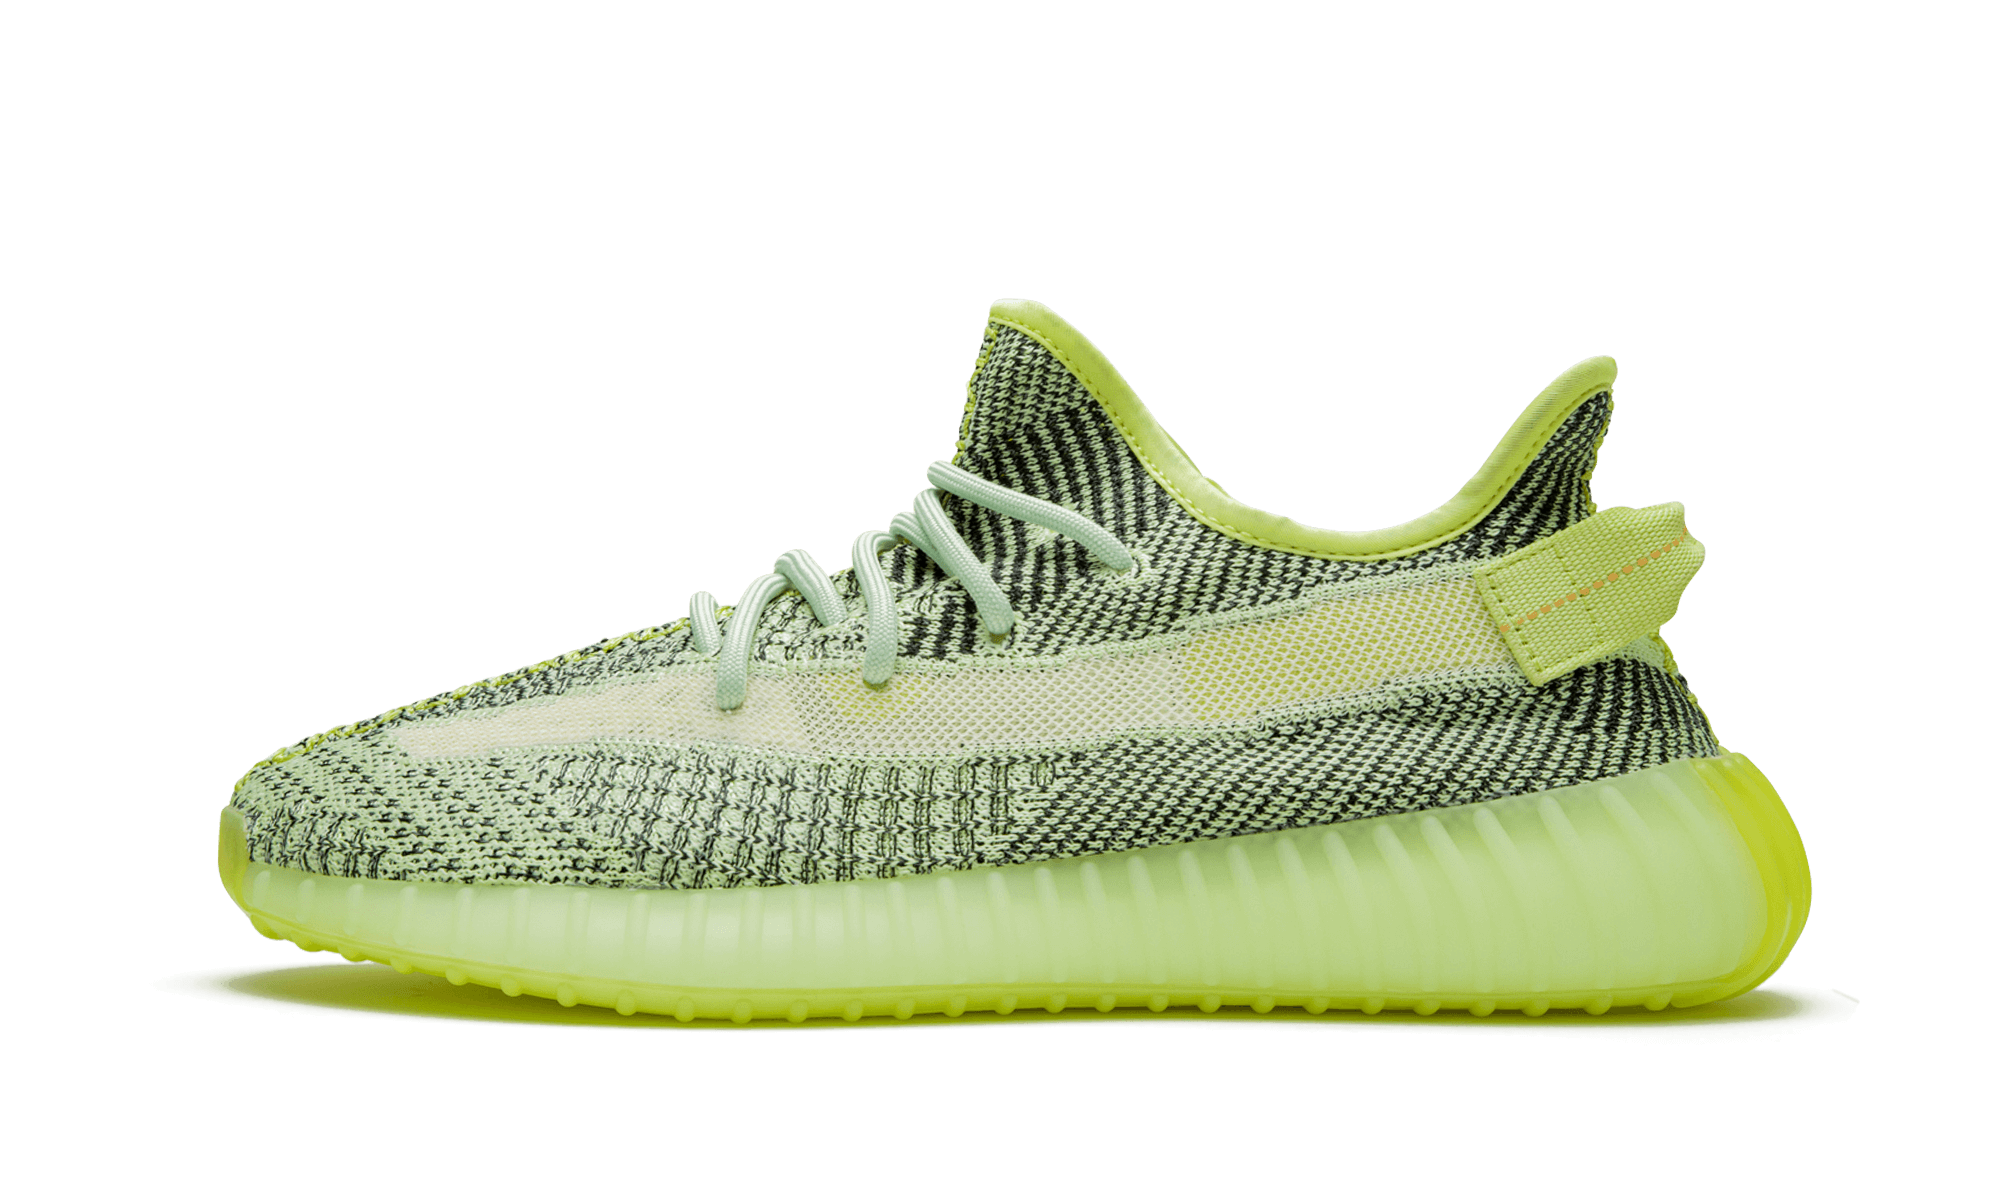 Boost 350 V2 Yeezreel Reflective - AirBoostShoes Yeezy Boost Shoes ...